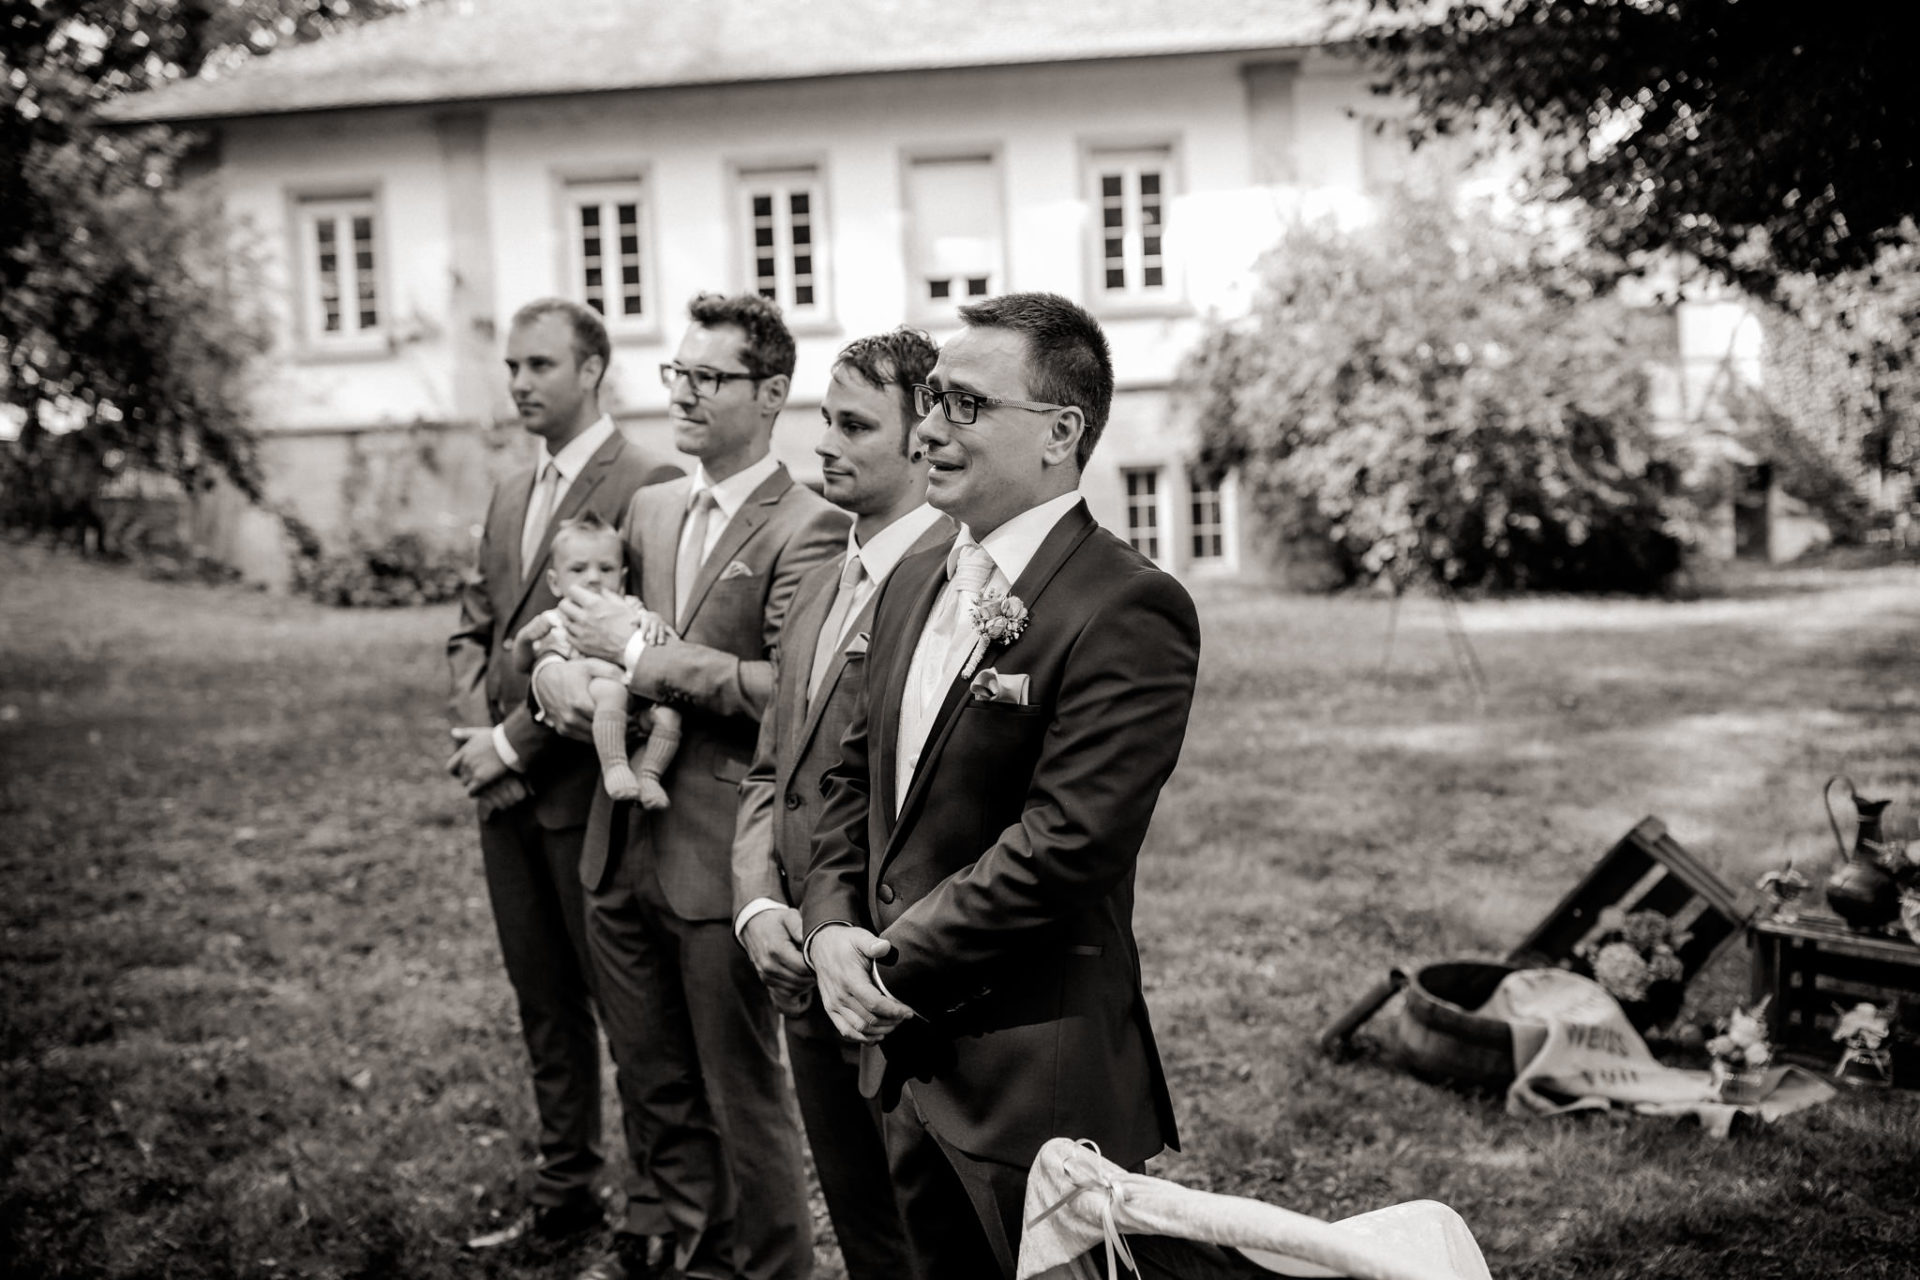 stuttgart wedding photographer-Castle Wedding Germany-Blackforest marriage-schloss heinsheim groomsmen and baby